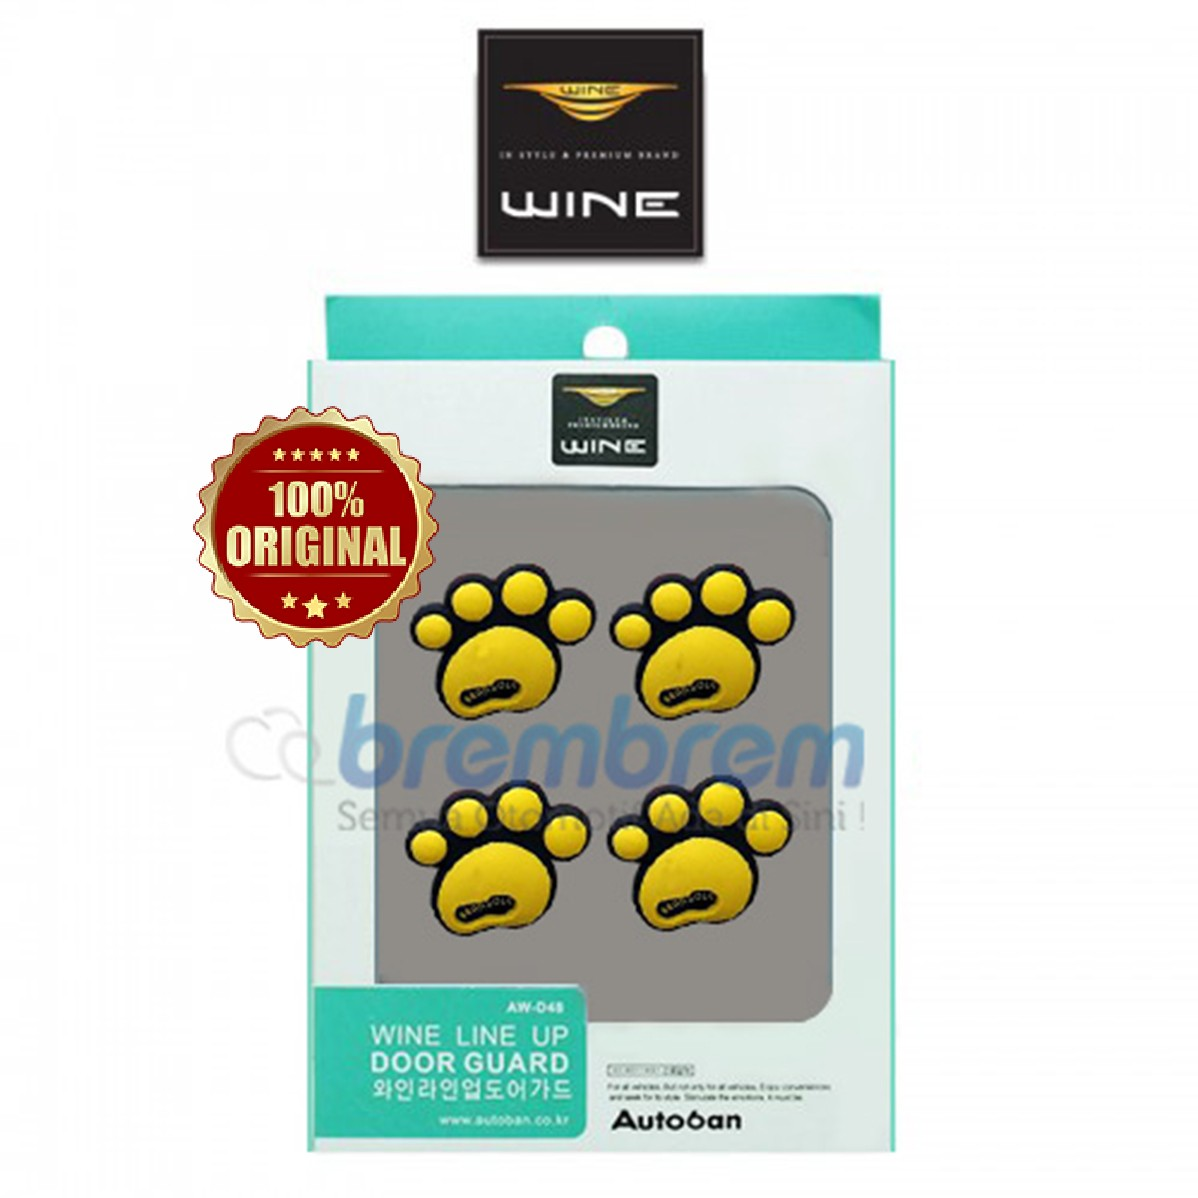 DOOR GUARD WINE LINE UP KUNING